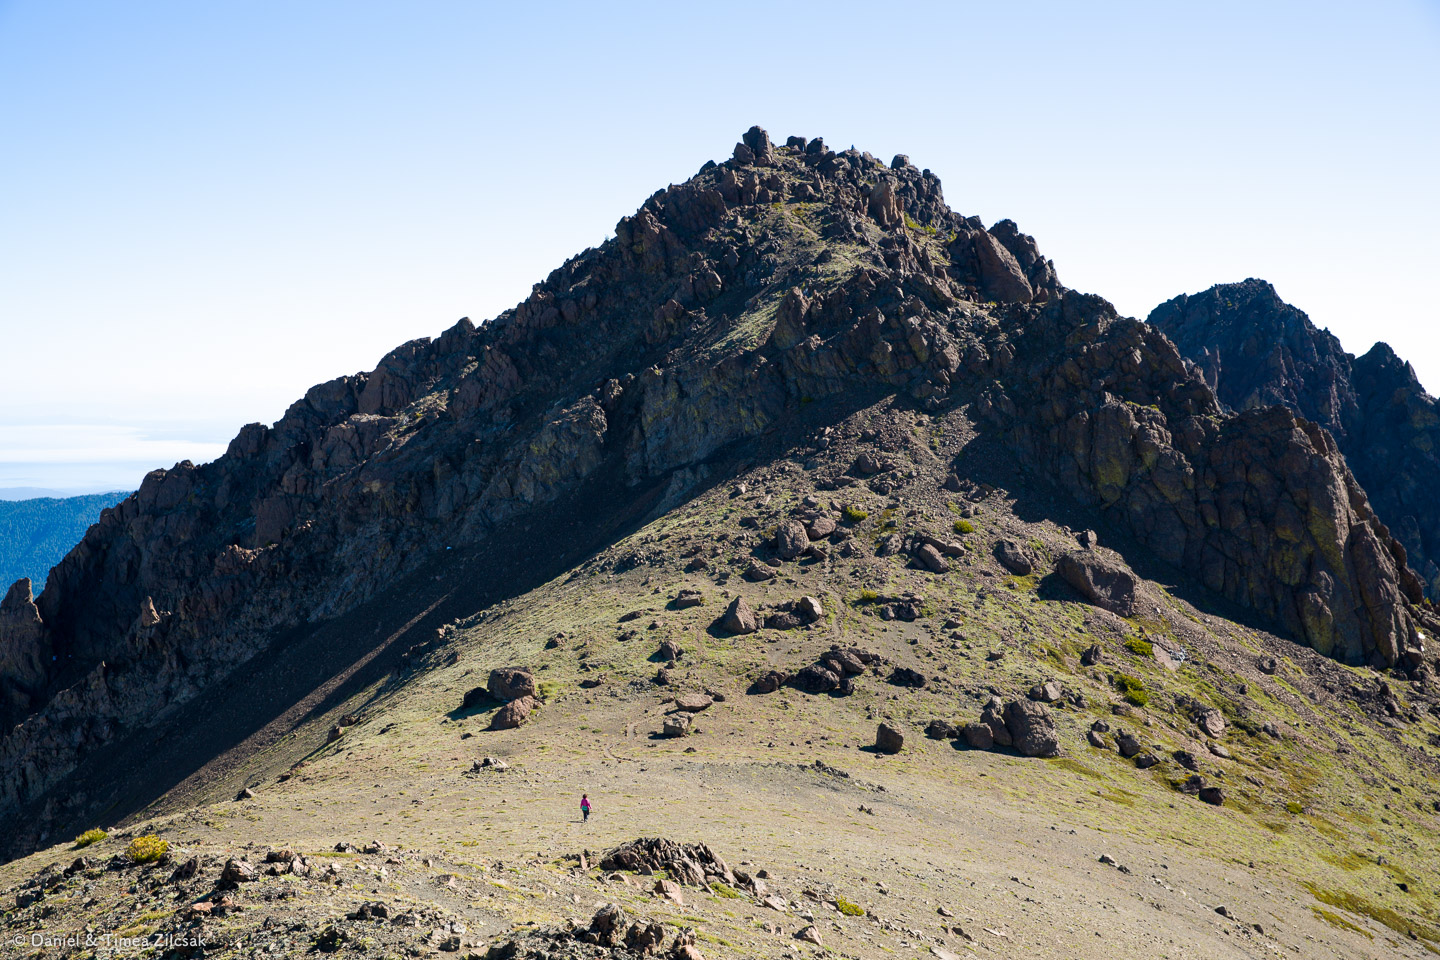 View of Buckhorn Mountain's top from the false summit.